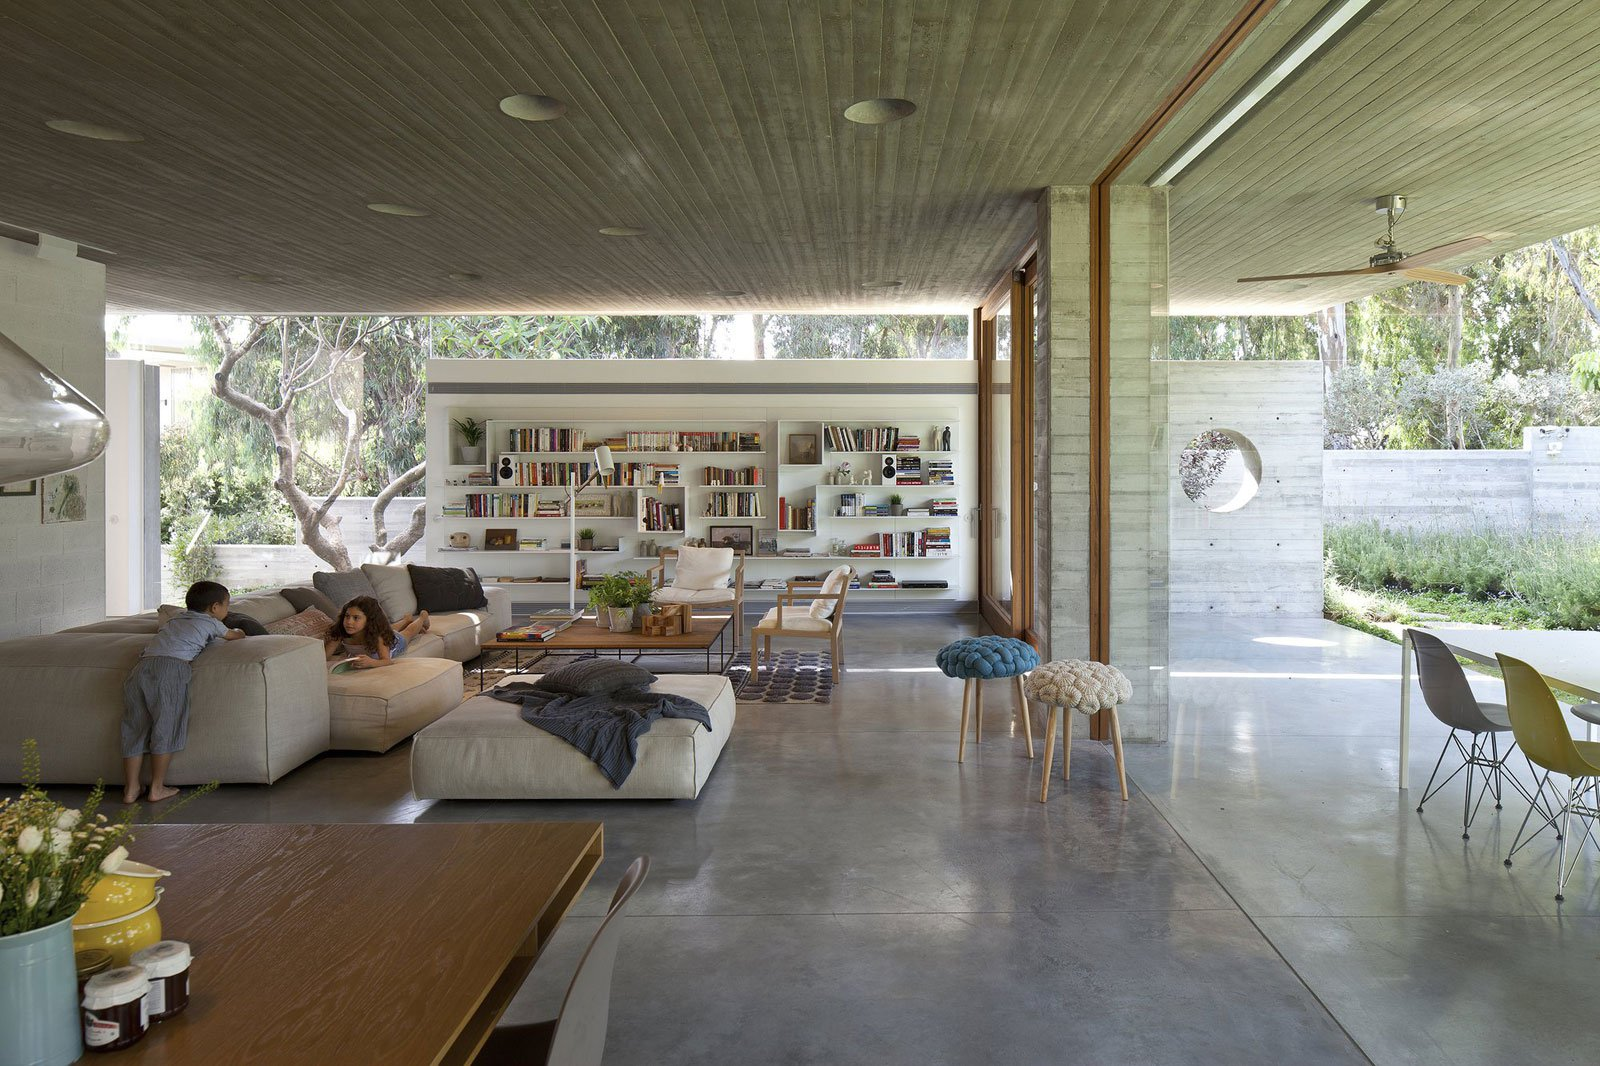 A-House-for-an-Architect-10